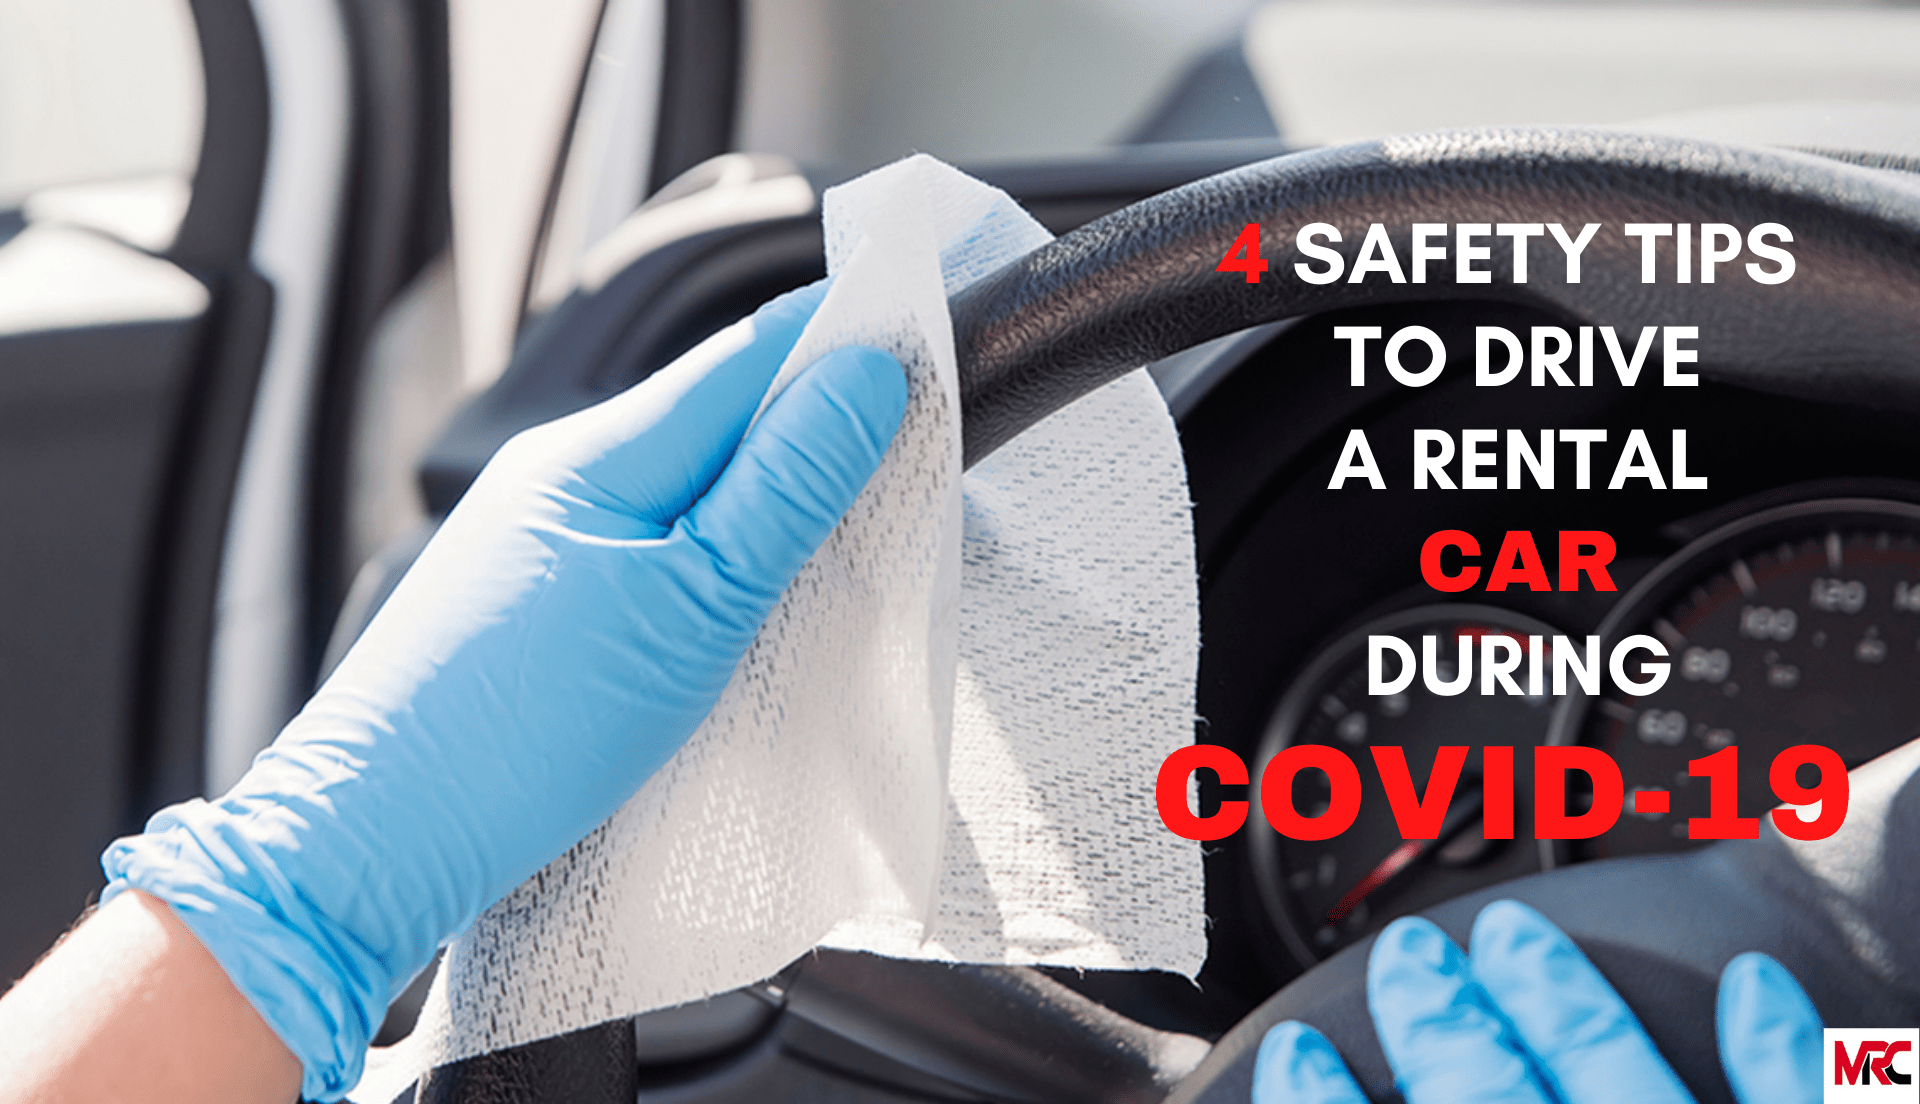 safety-tips-to-drive-car-during-coronavirus